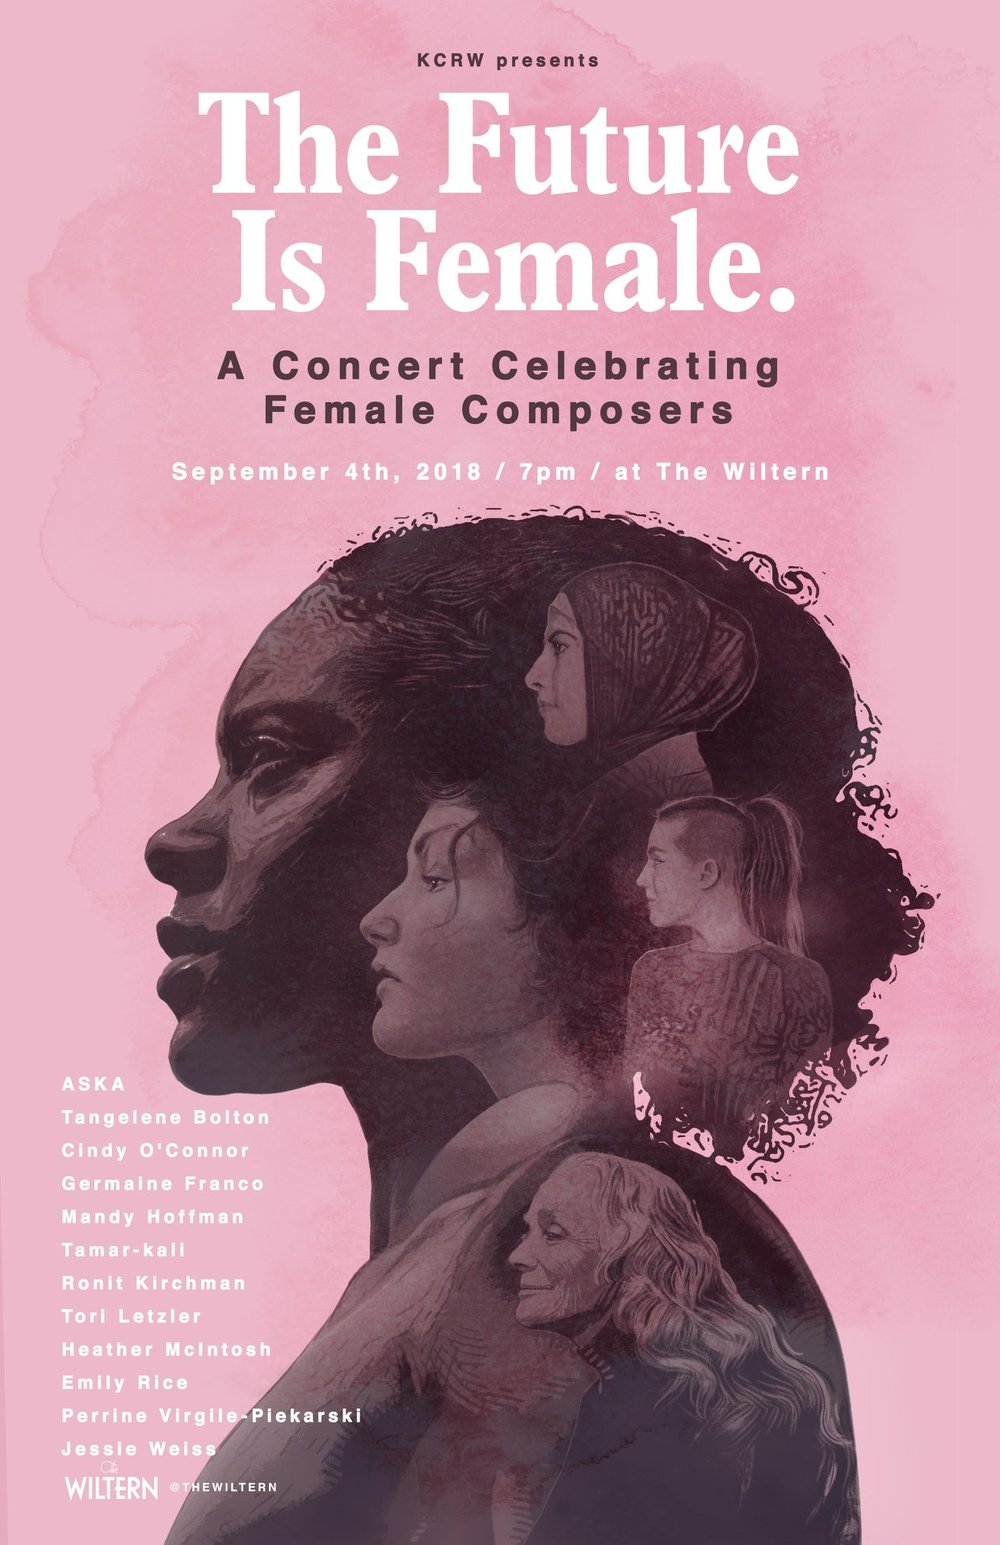 The Future is Female. - A Concert Celebrating Female Composers